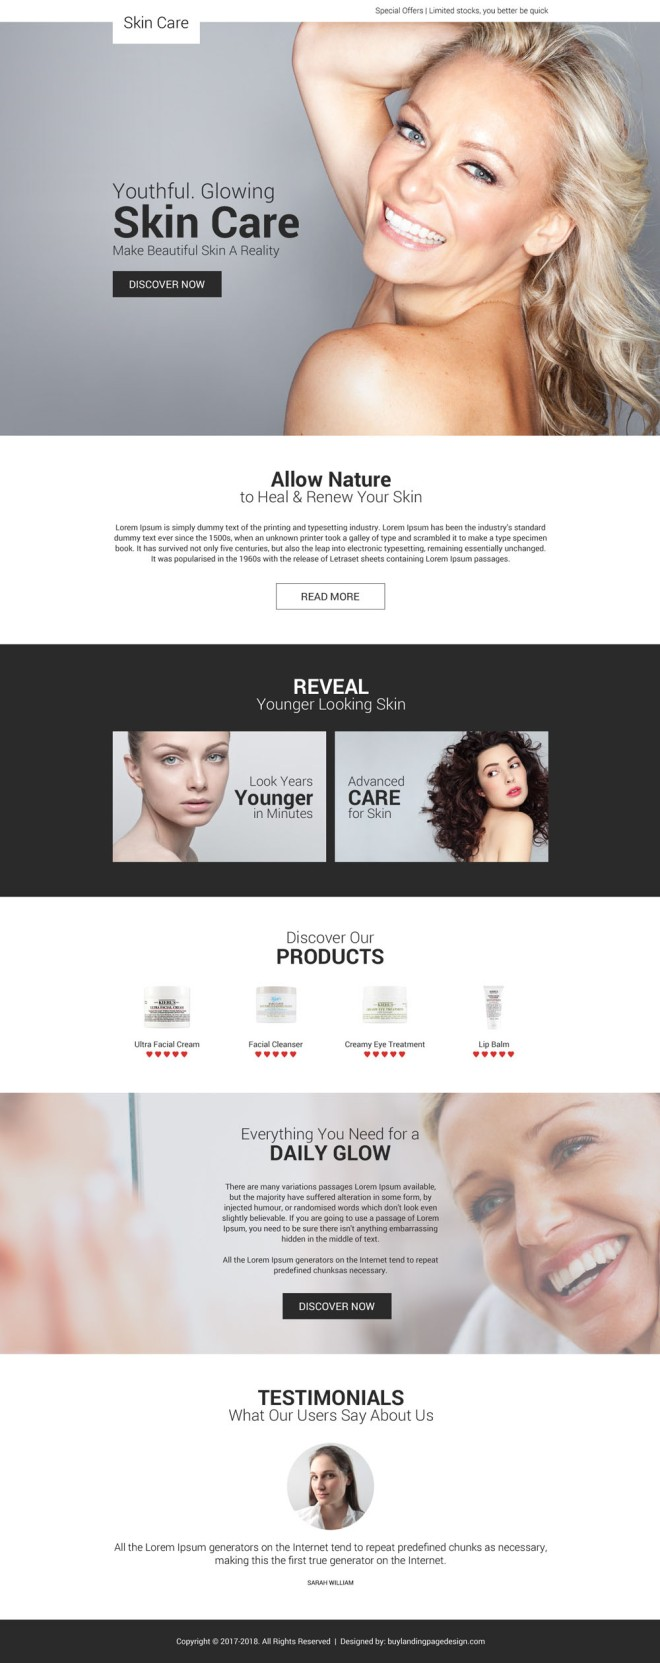 youthful and glowing skin care appealing landing page